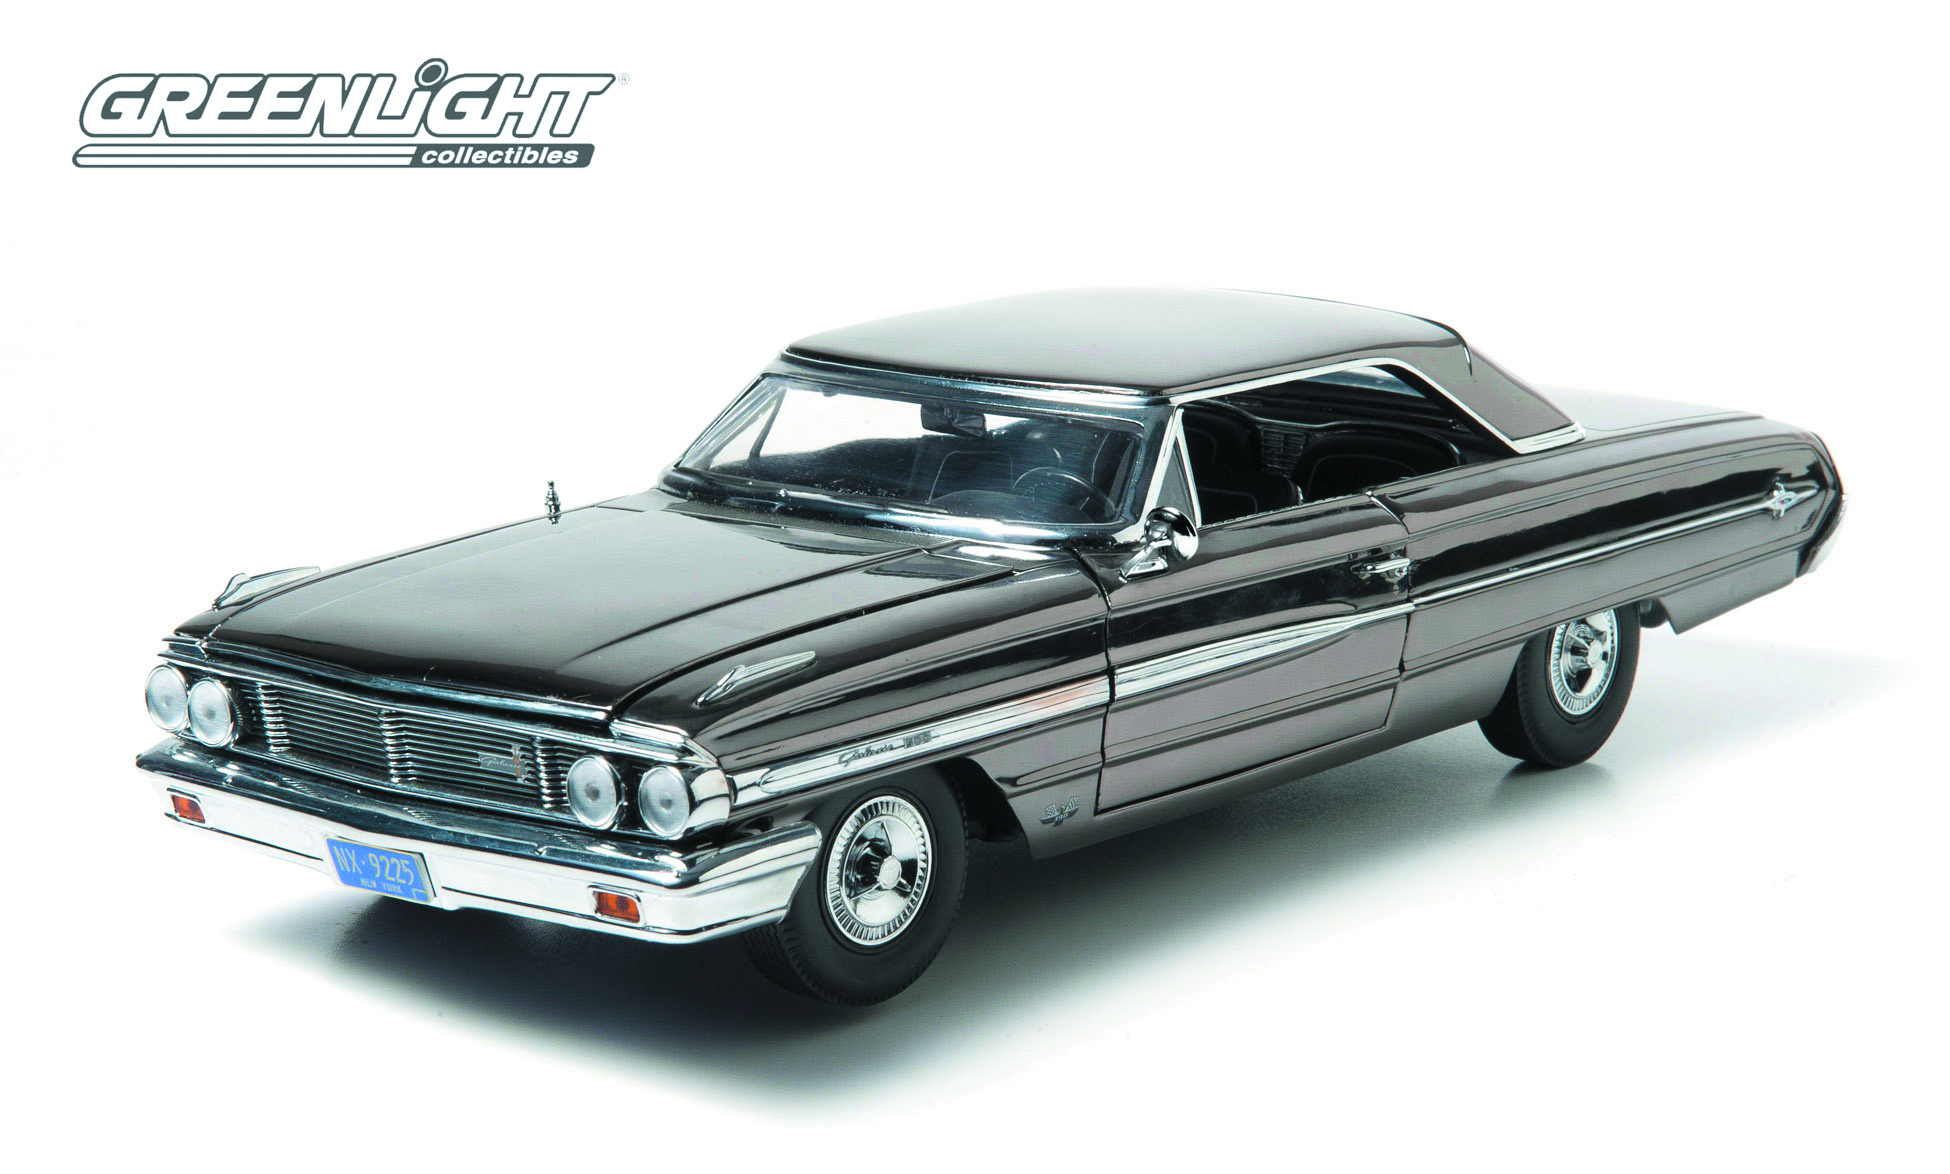 GREENLIGHT MIB3 CHROME 1964 FORD GALAXY 1/18 DIE-CAST